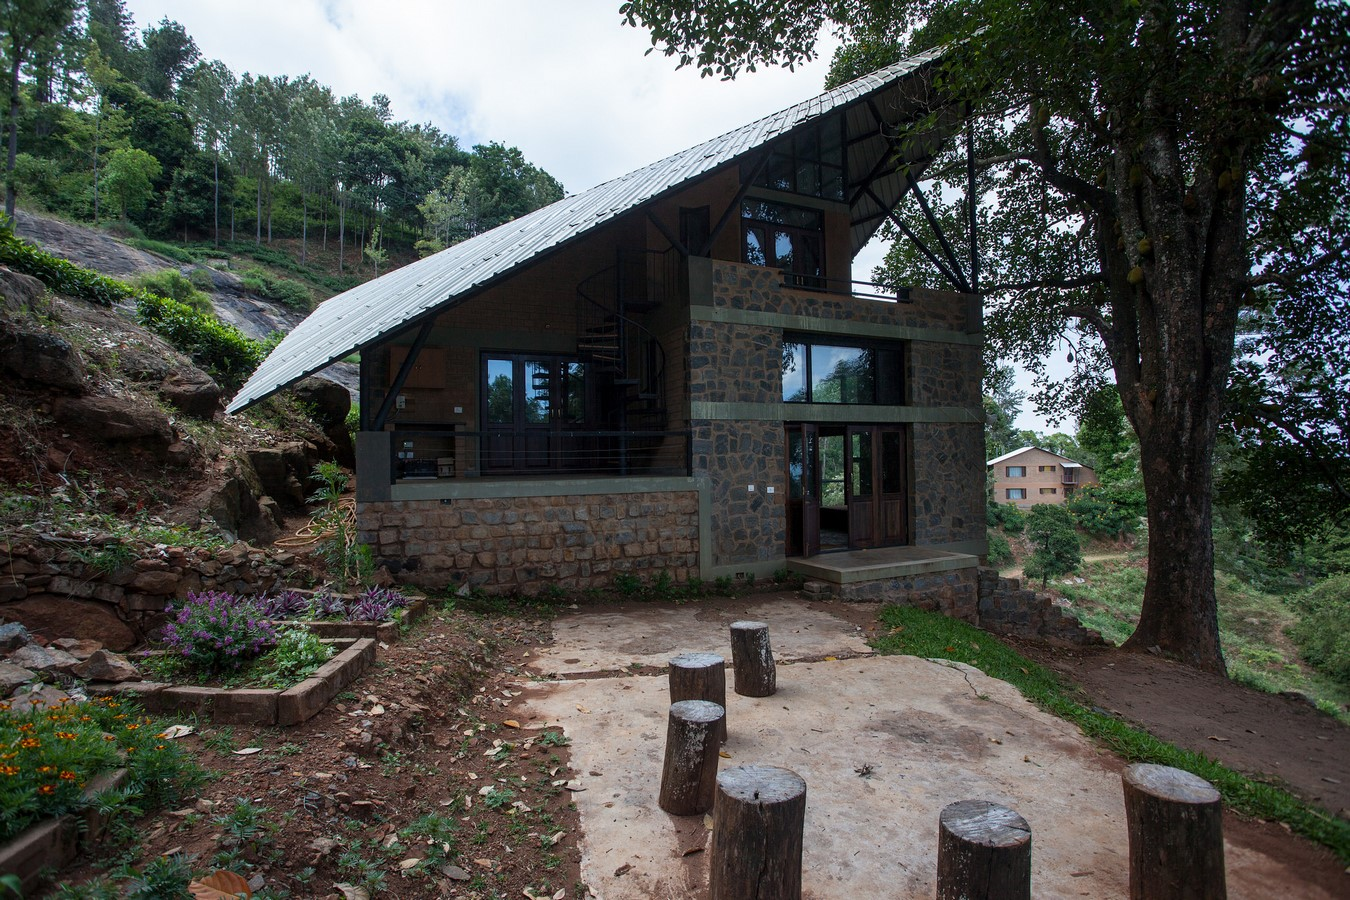 Hornbill House at Oland Estate by Chitra Vishwanath: End of the road property - Sheet4